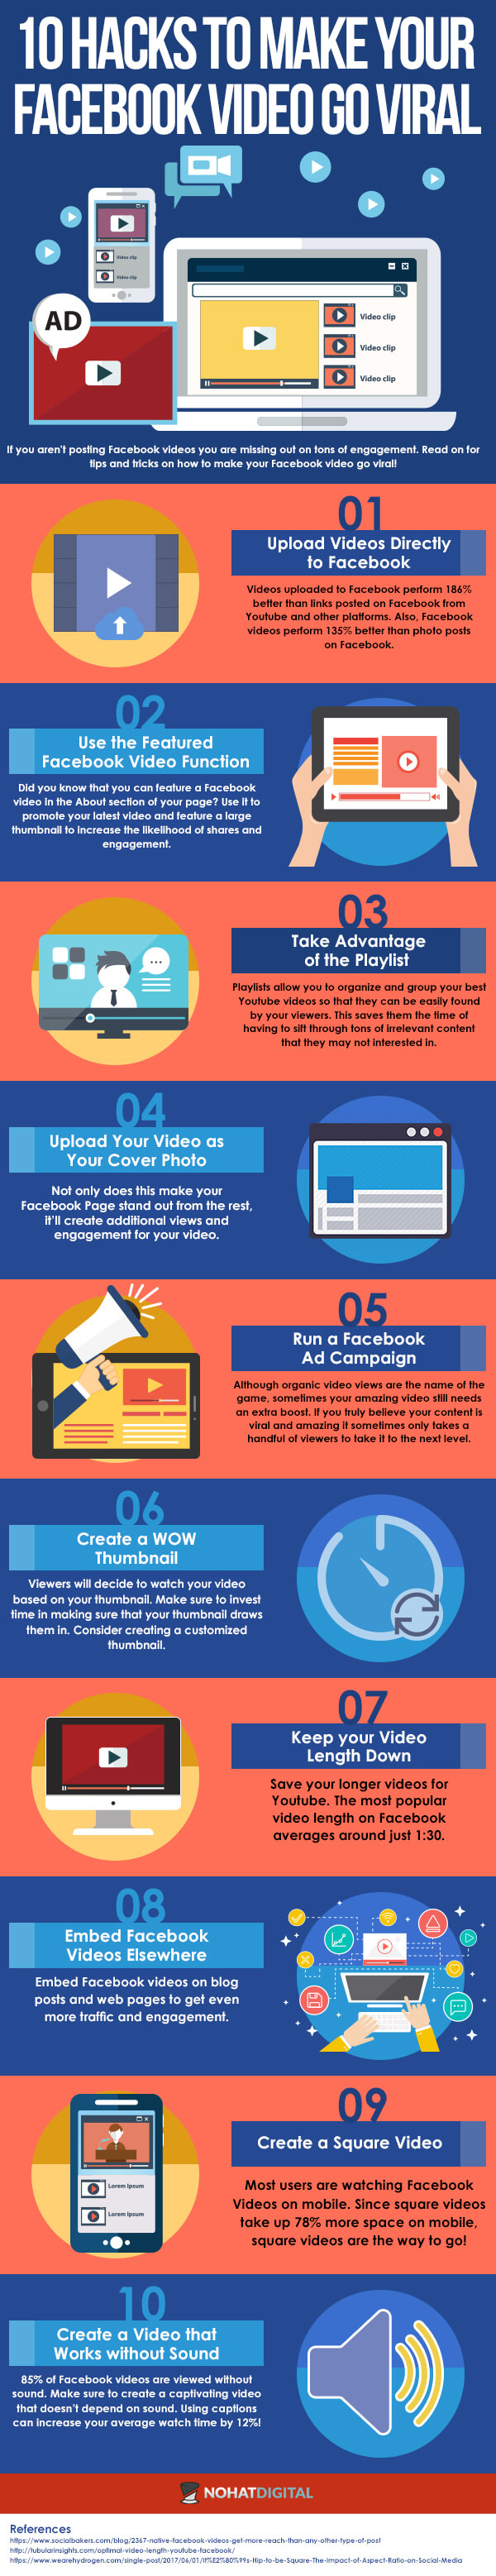 10 Hacks to Make Your Facebook Video Go Viral